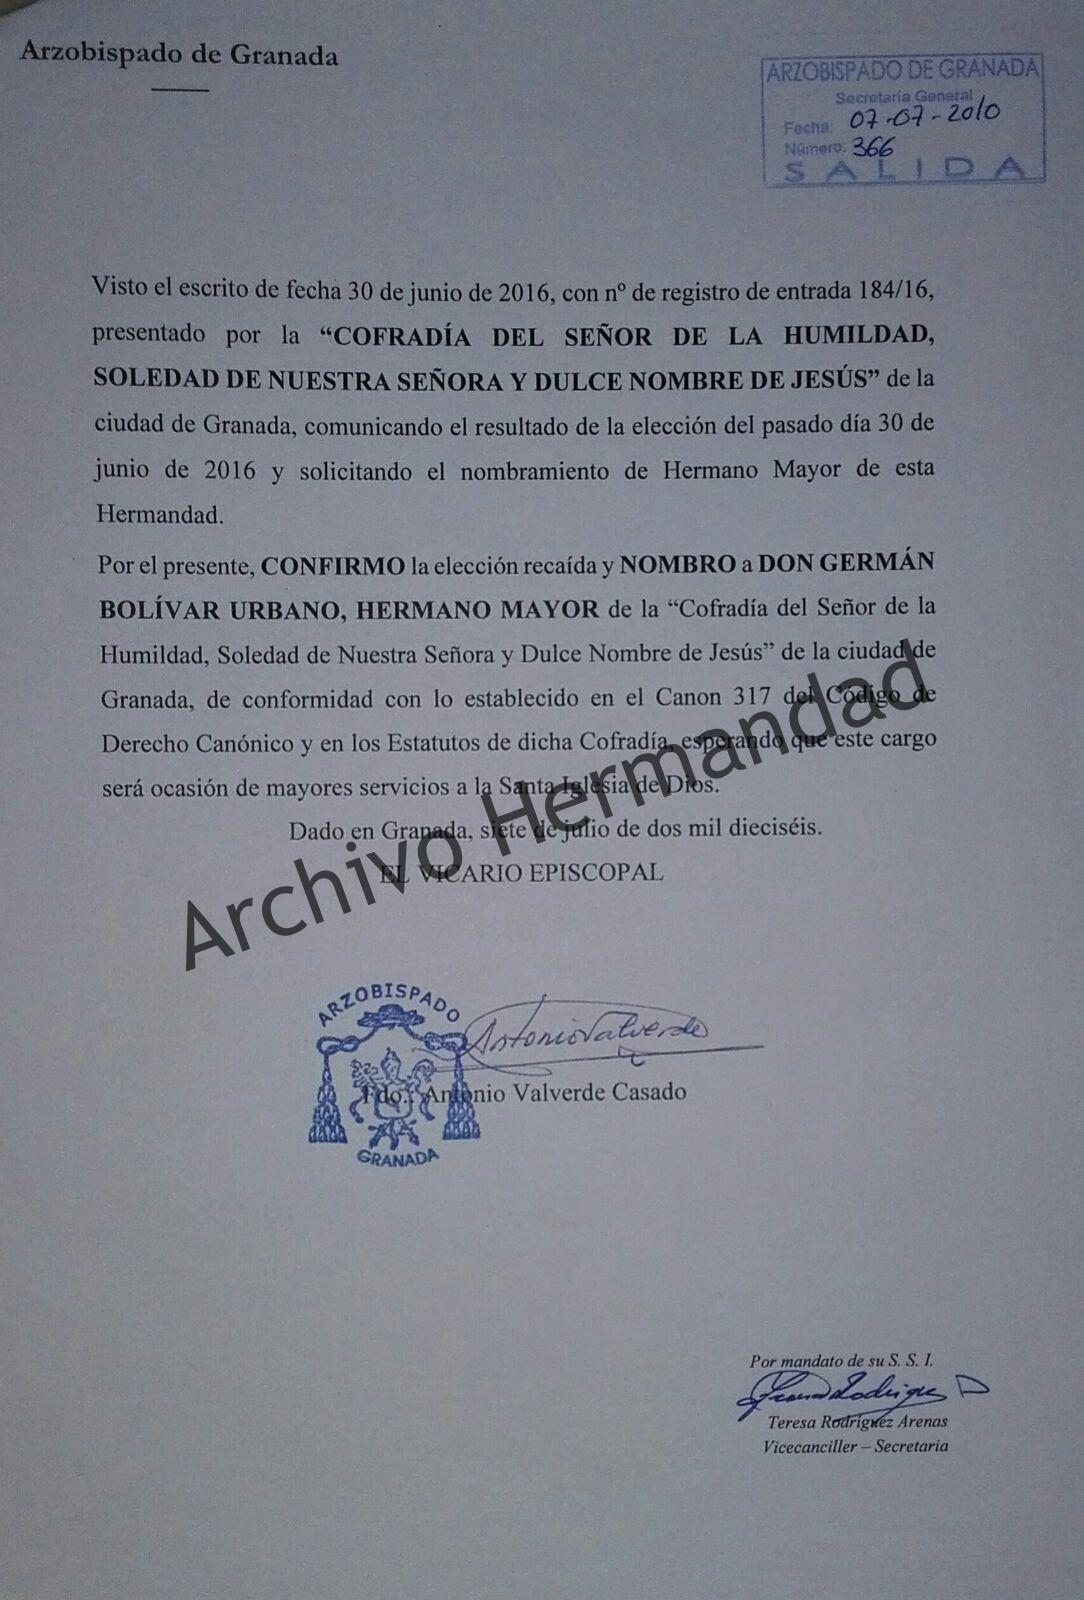 Ratificación de D. Germán Bolívar Urbano como Hermano Mayor